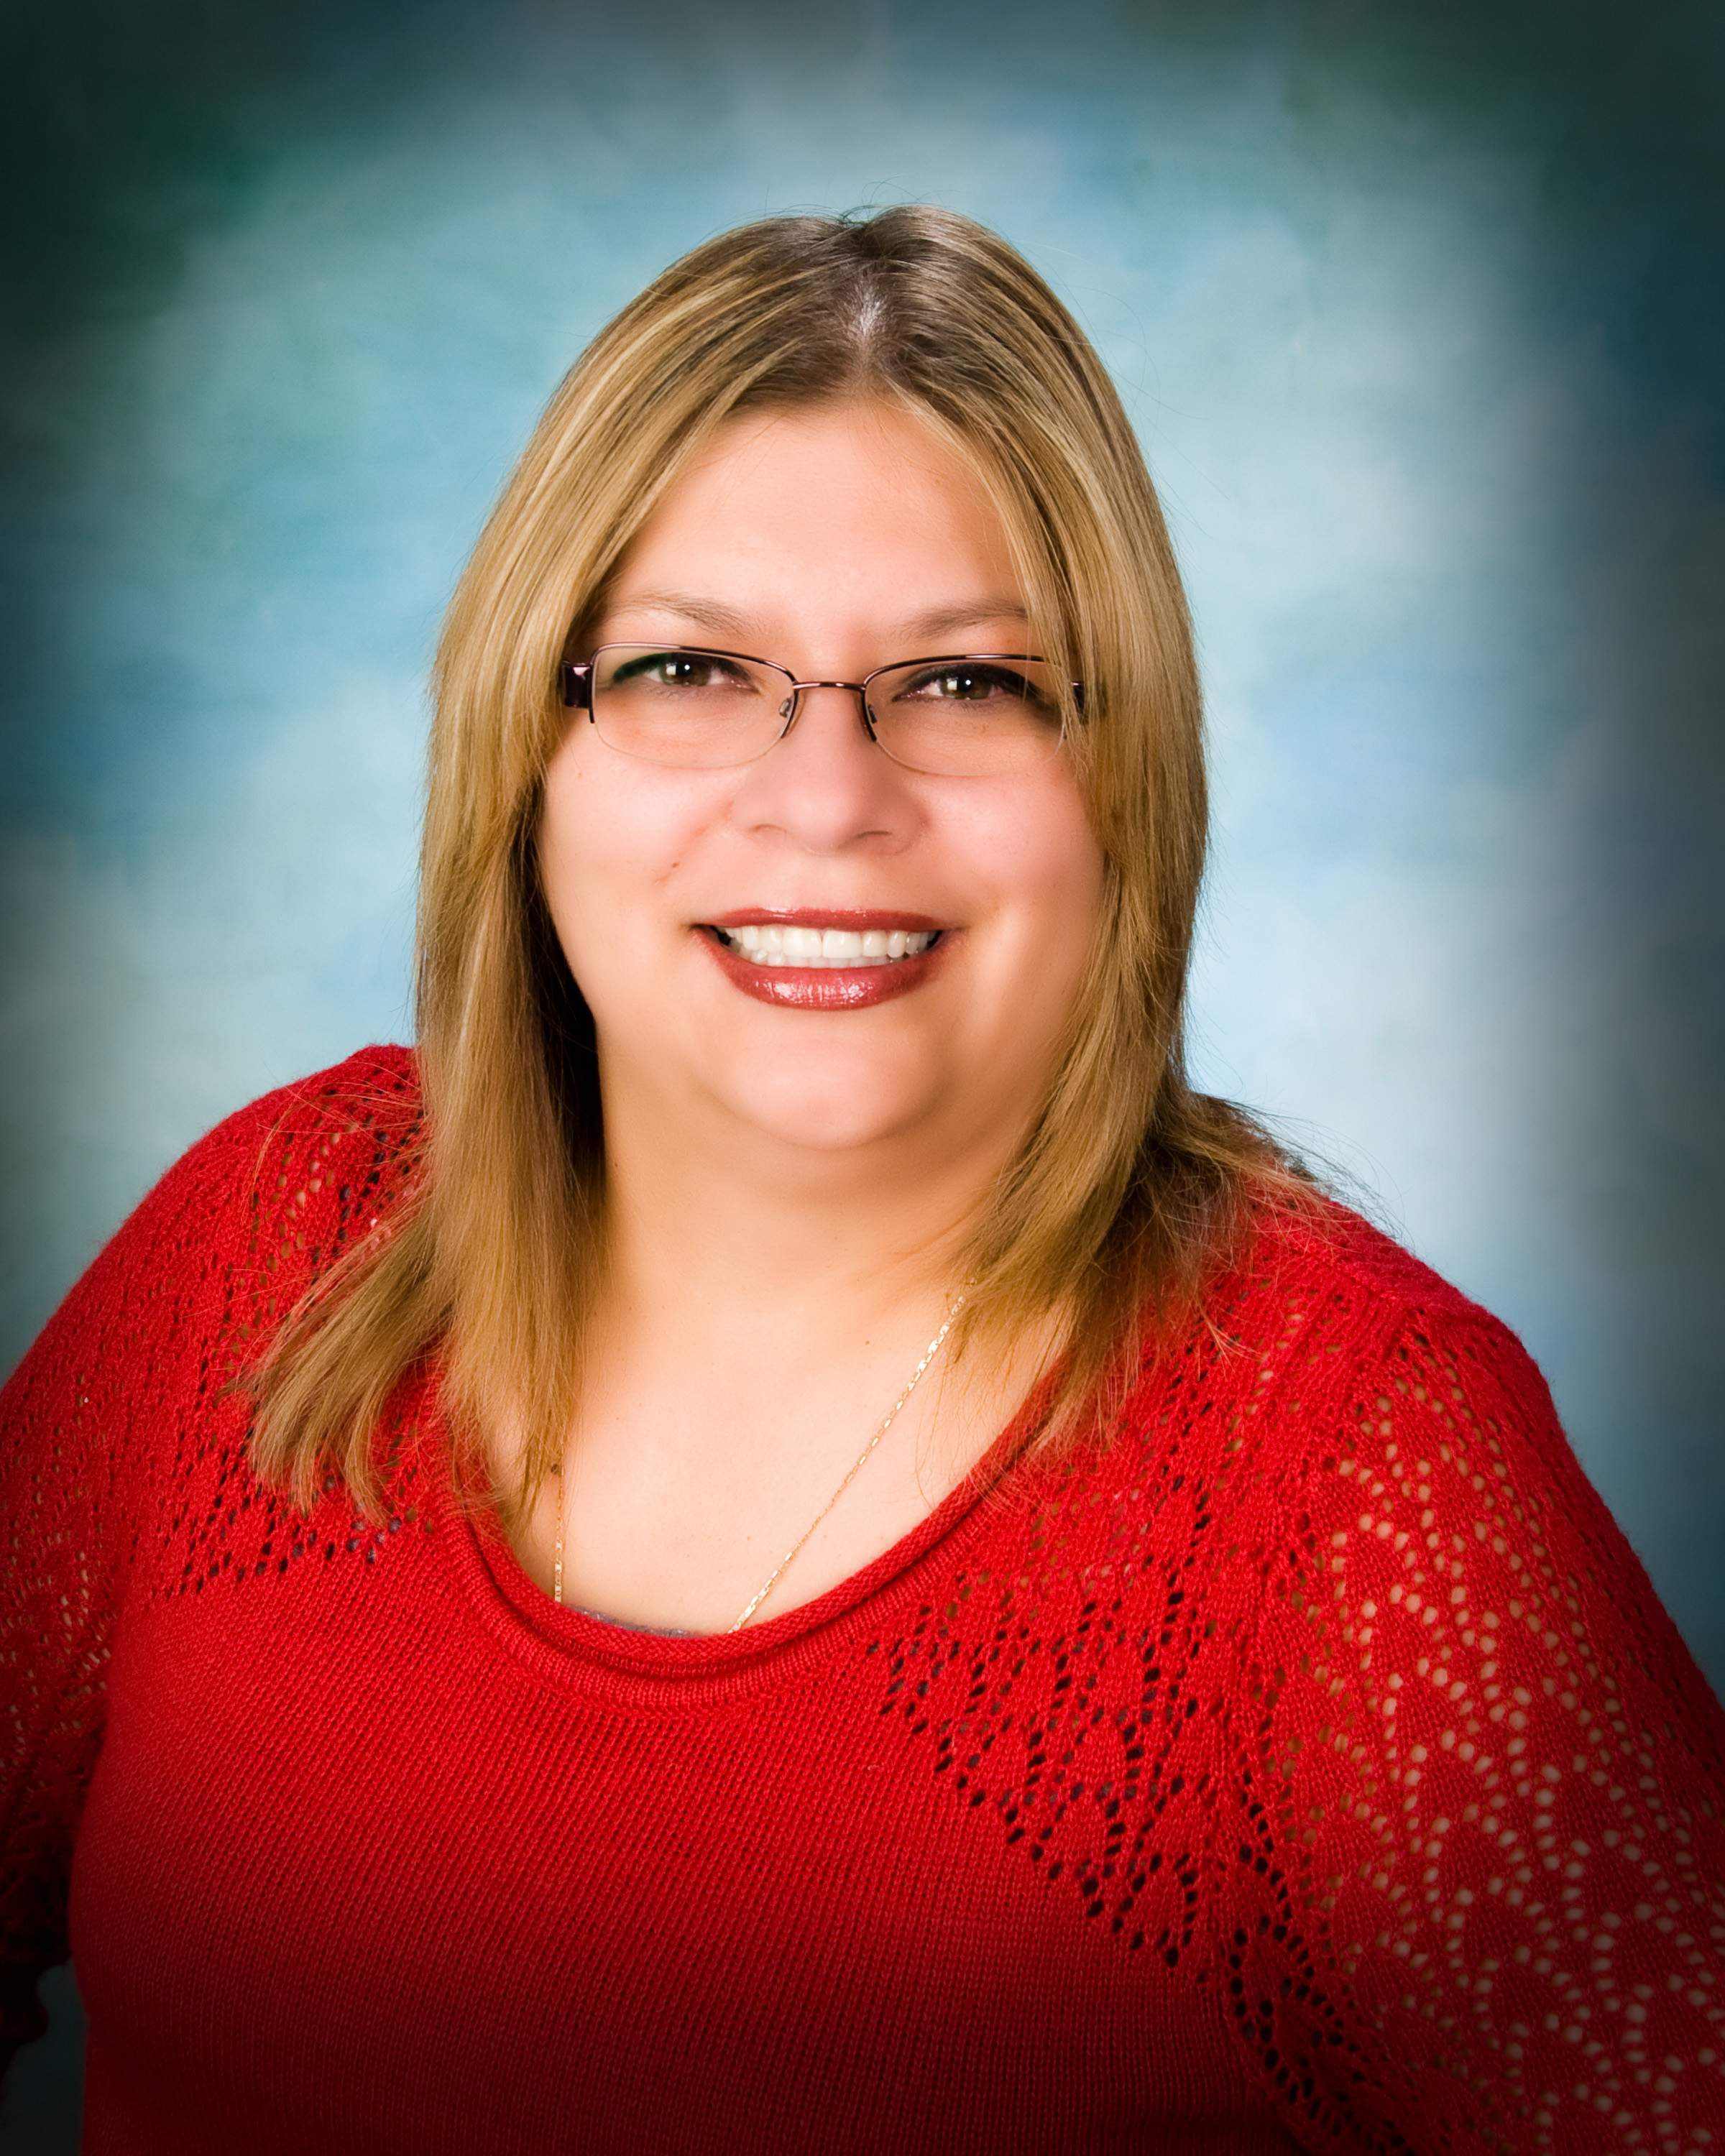 Natalia Del Cid, a 21-year veteran for Associated Staffing in Grand Island, is making her mark by volunteering with Habitat for Humanity.   This is her story.